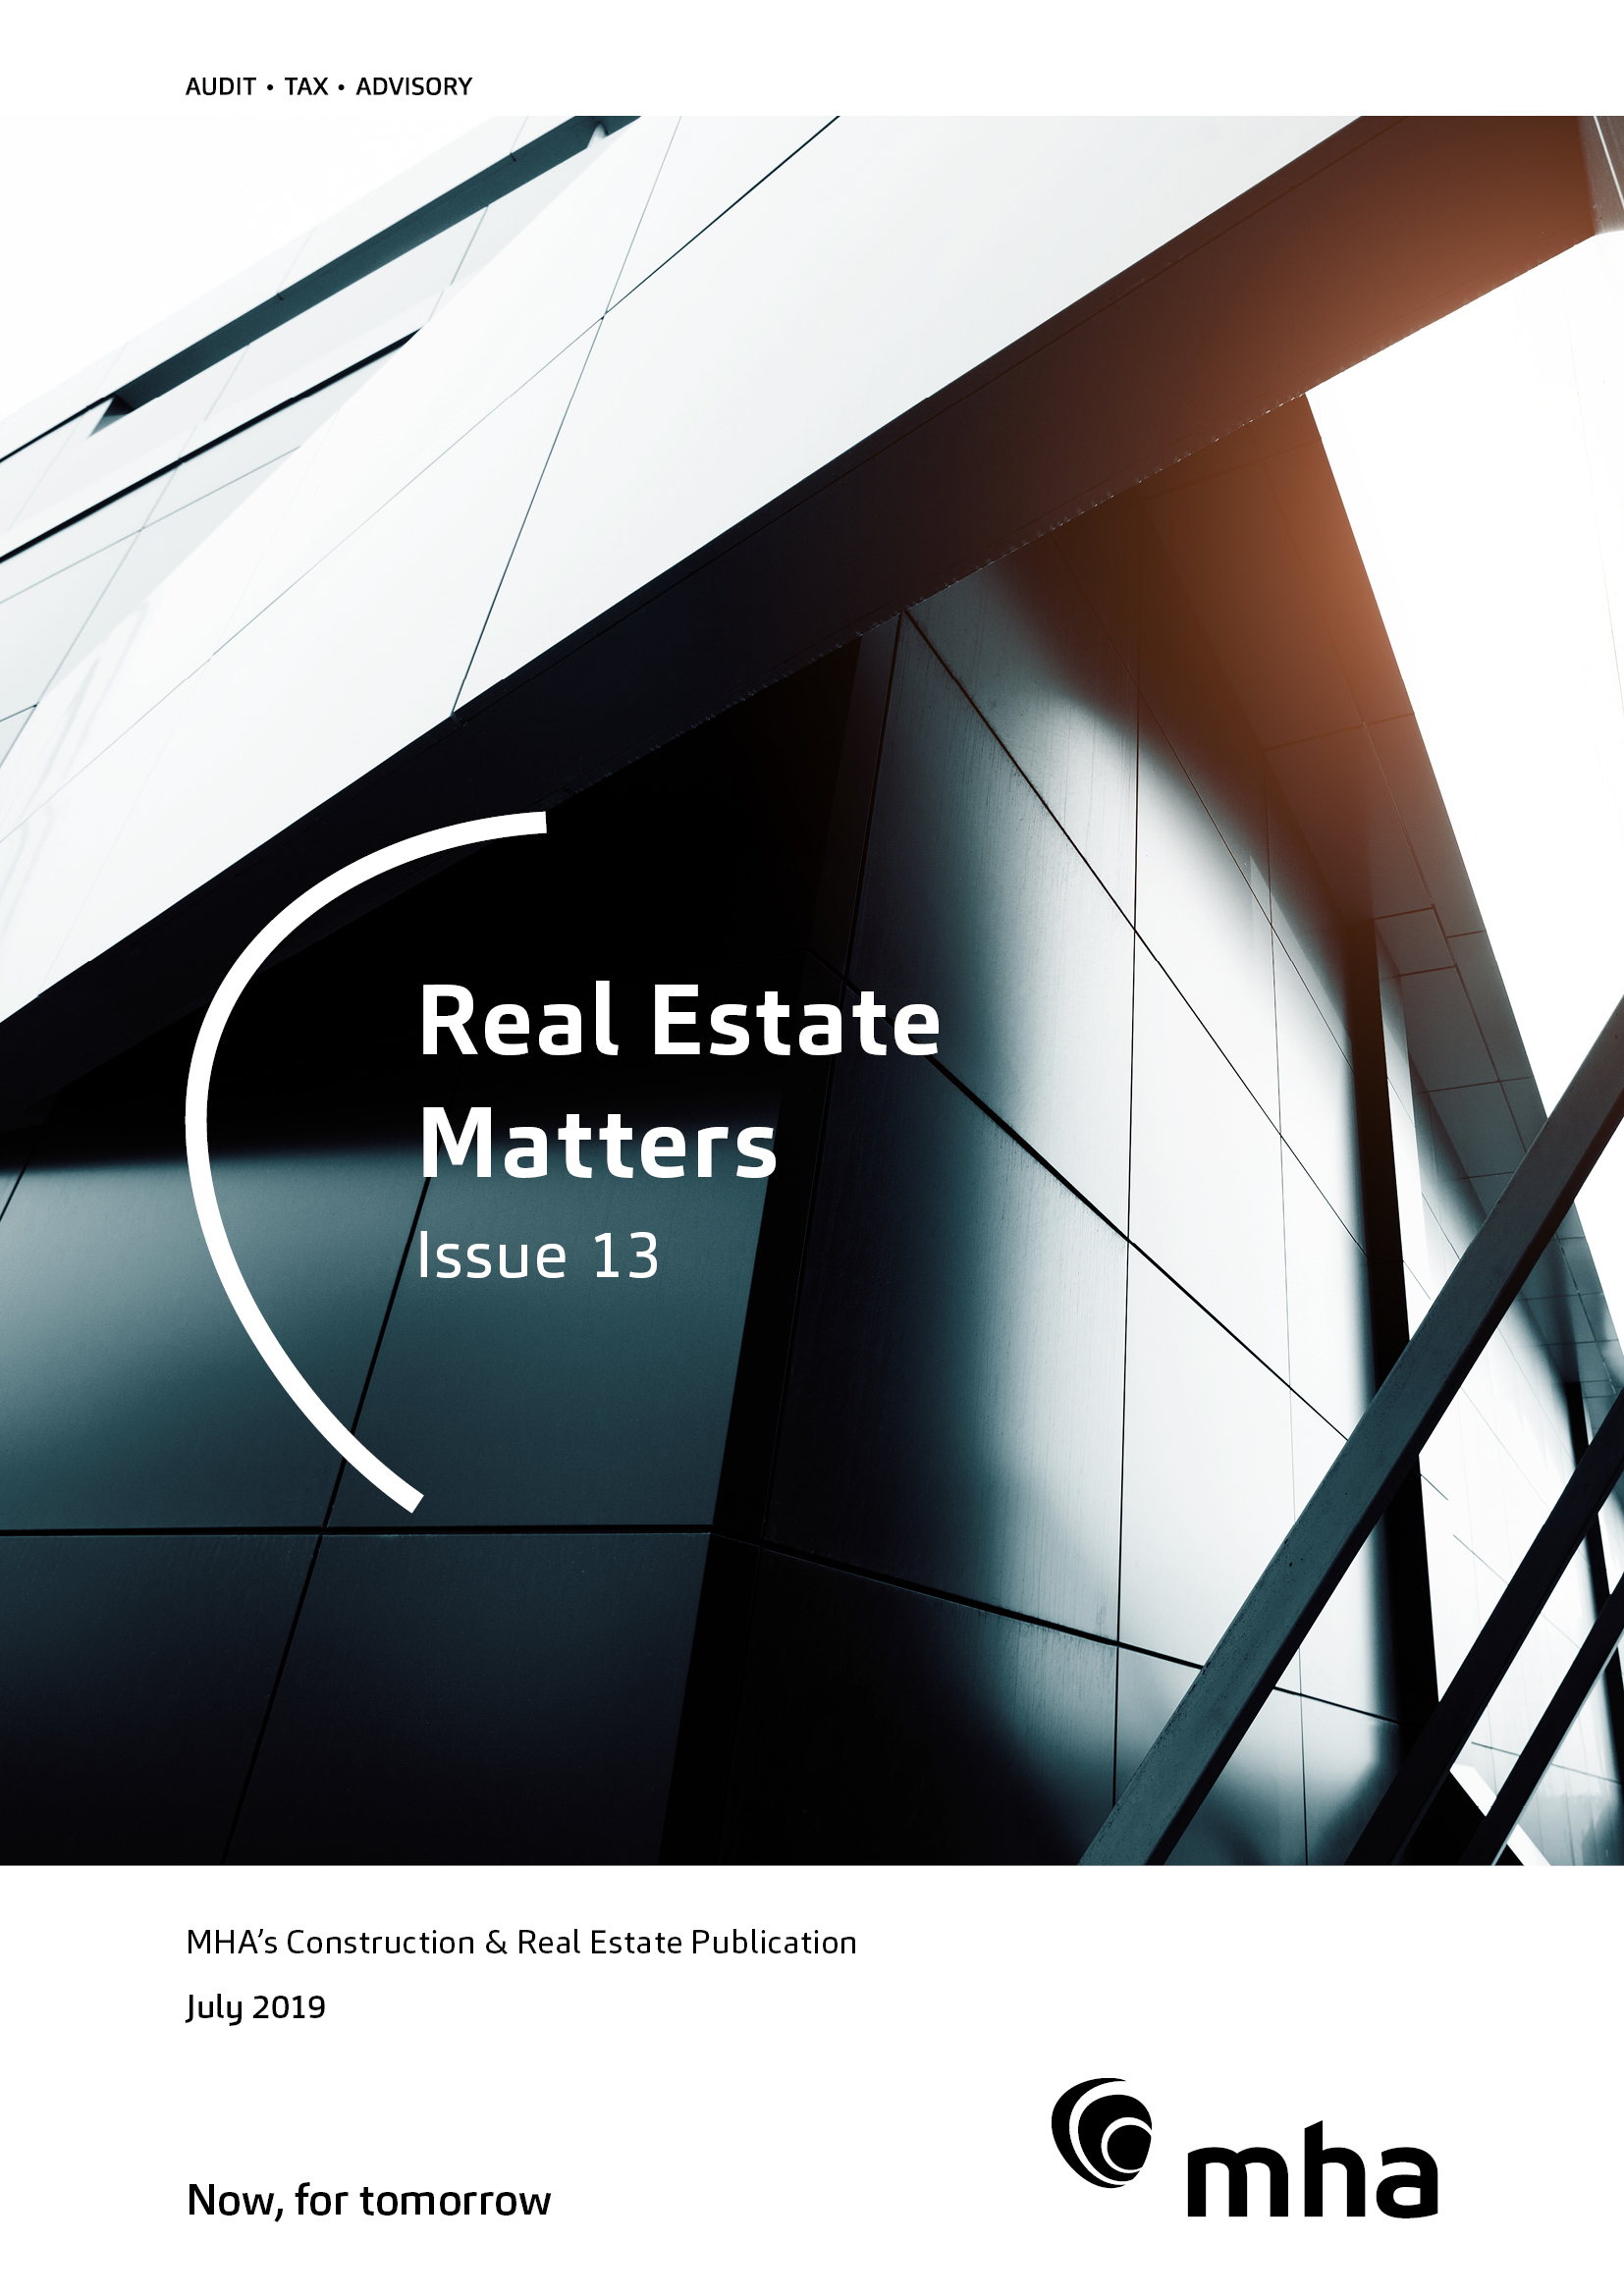 Real Estate Matters Issue 13